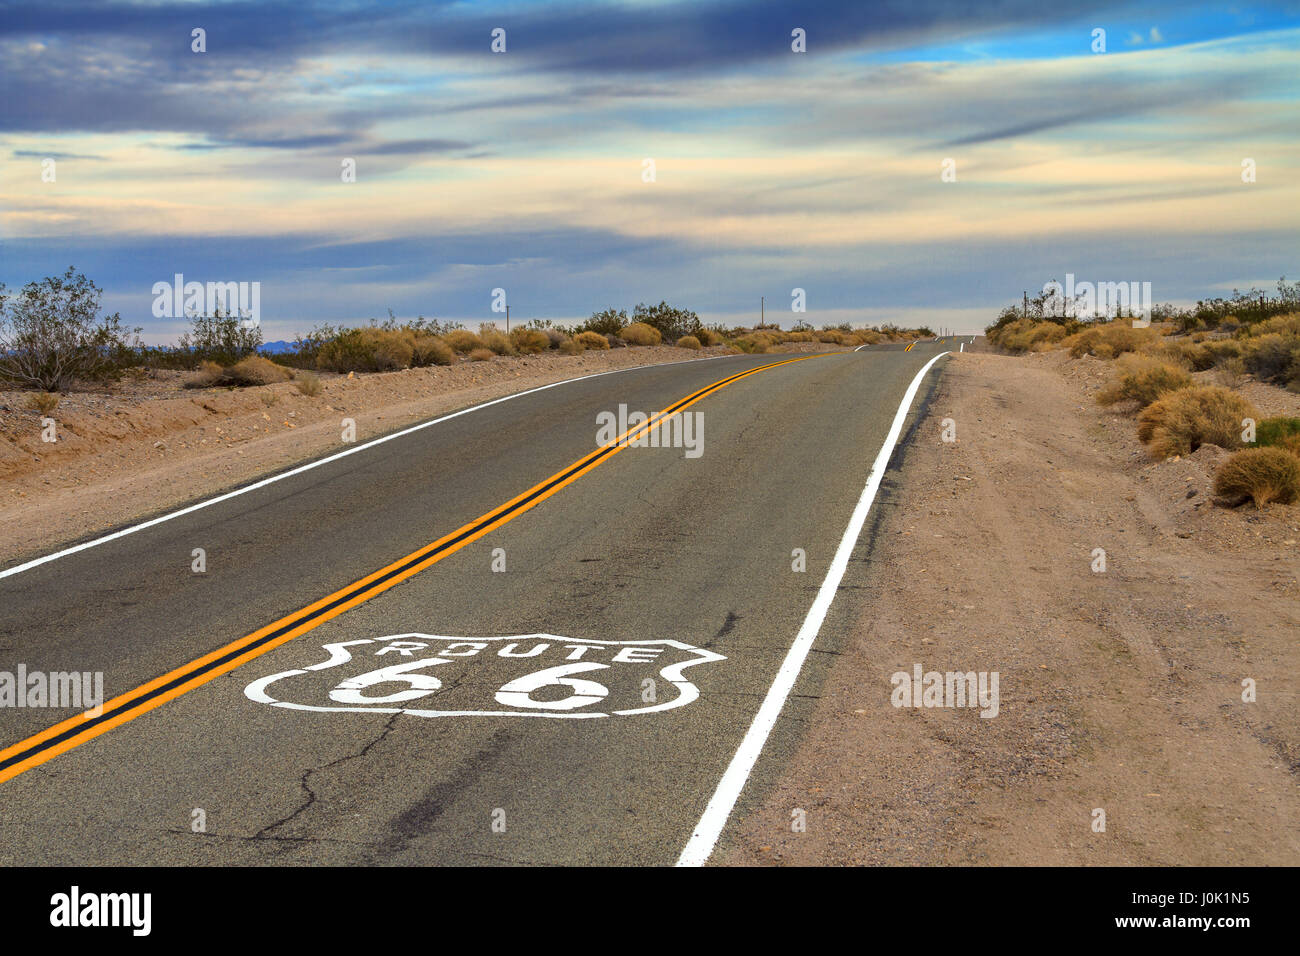 Route 66 road sign on the floor of the highway. - Stock Image